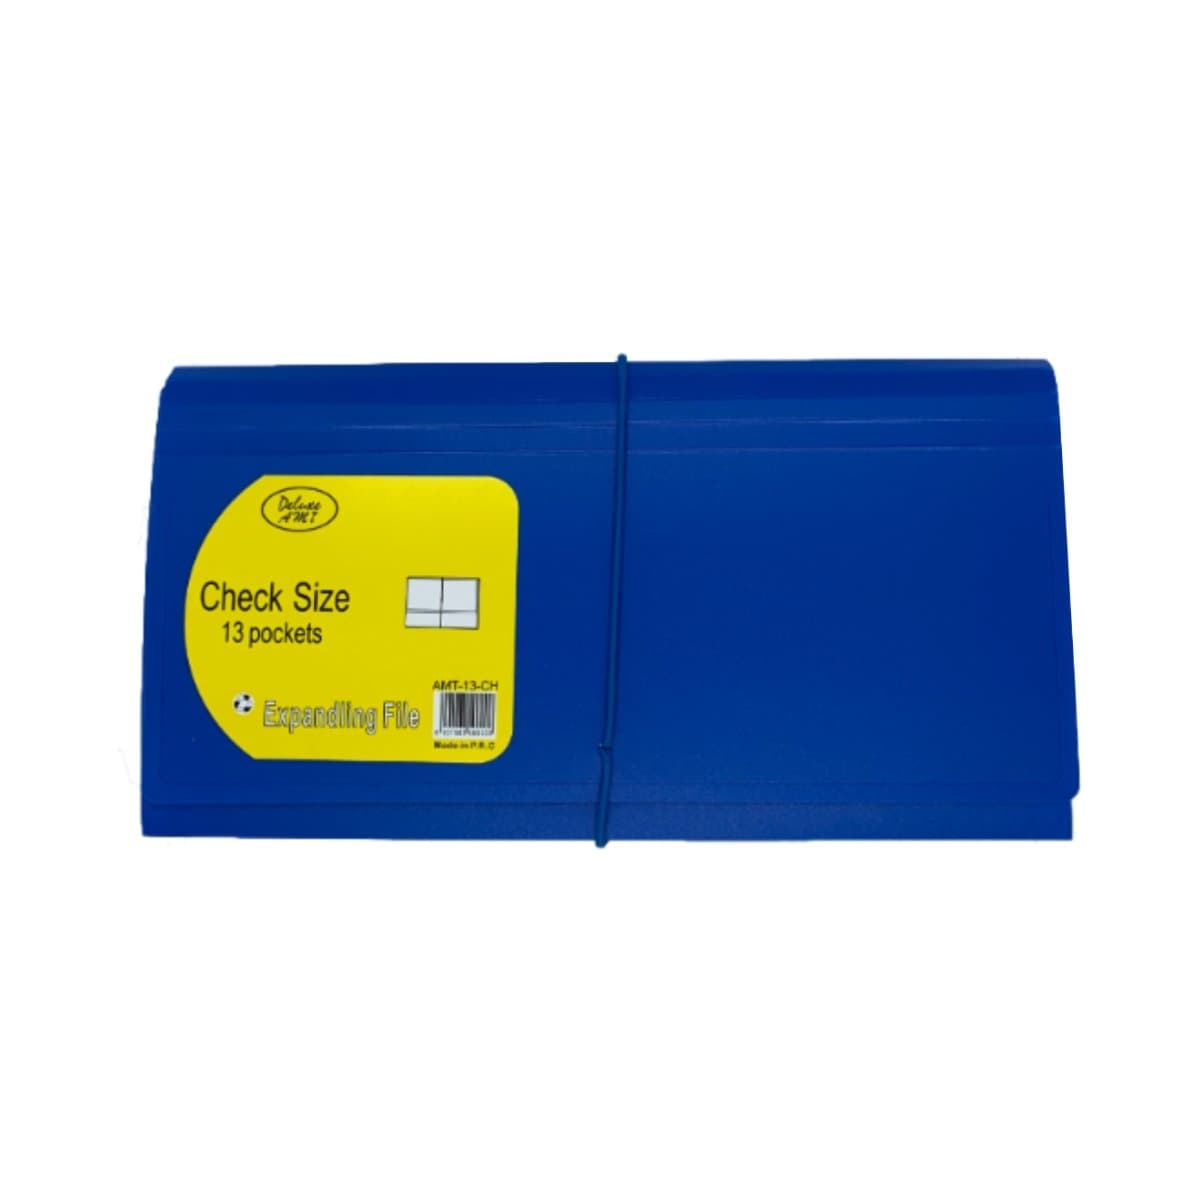 Deluxe Cheque Expanding File with elastic fastener, 13 Pockets, Blue